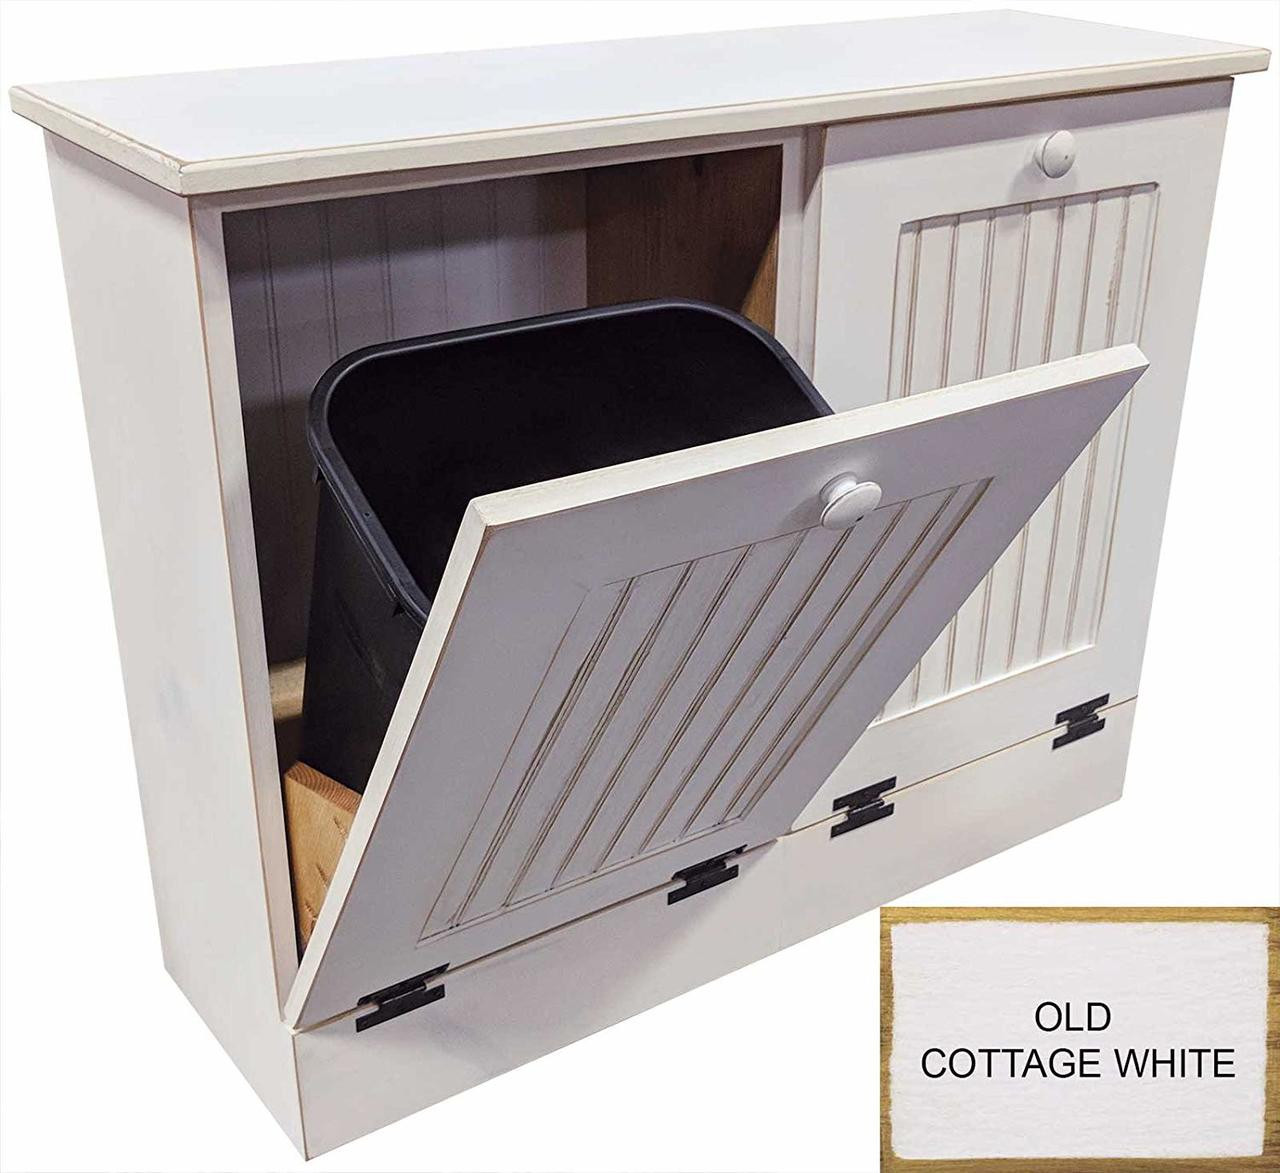 COTTAGE WHITE OLD SMALL